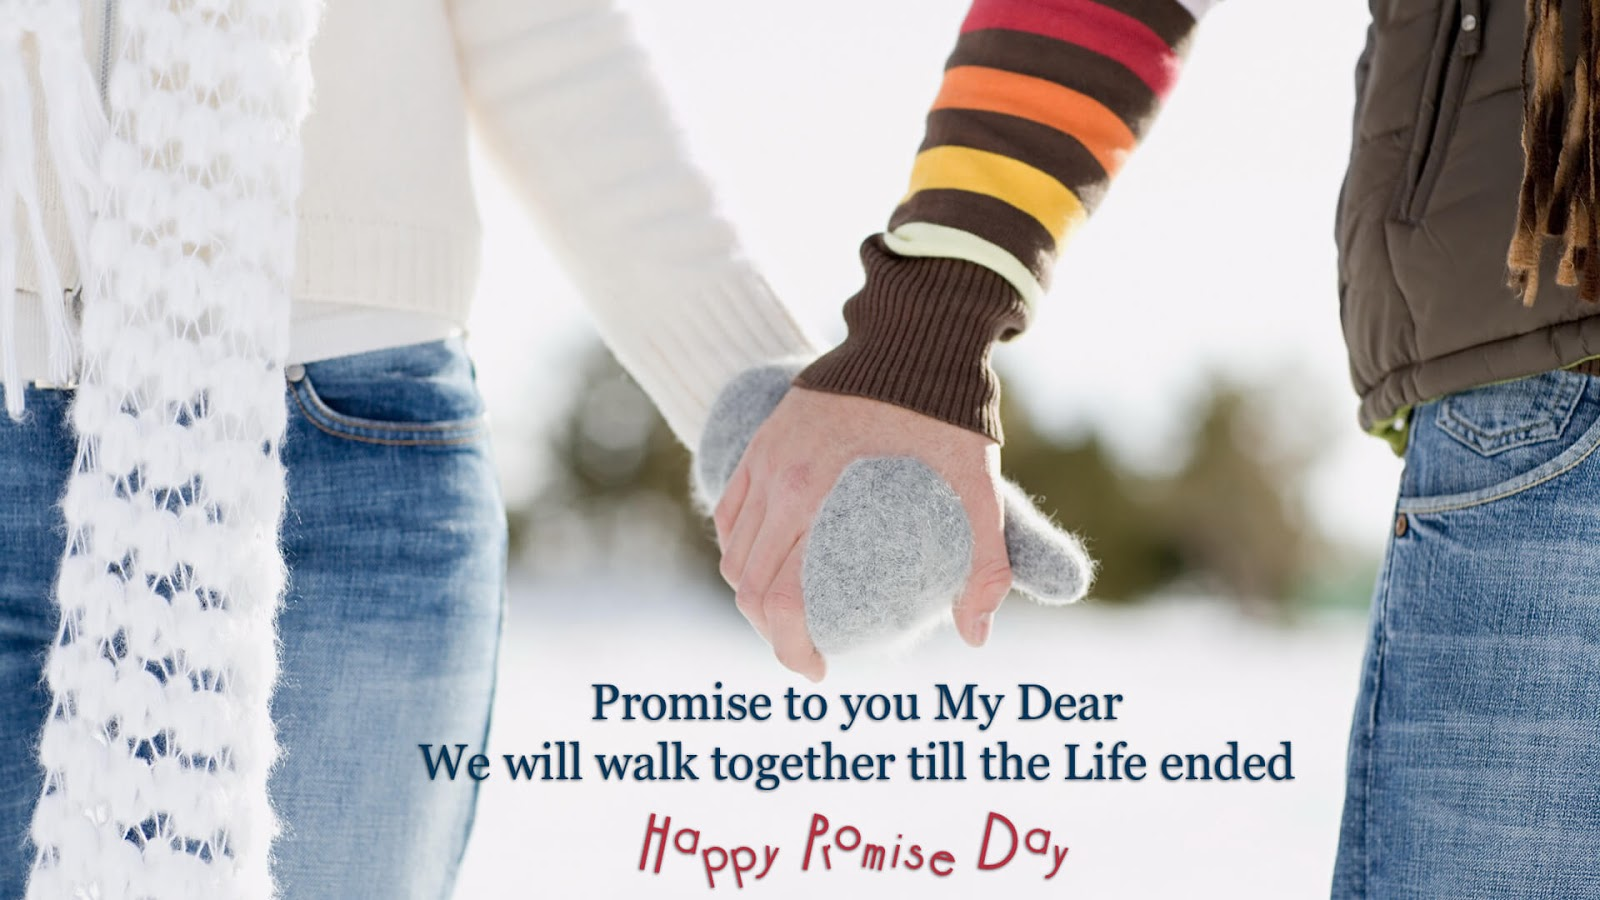 Happy Promise Day WhatsApp Status Facebook Post